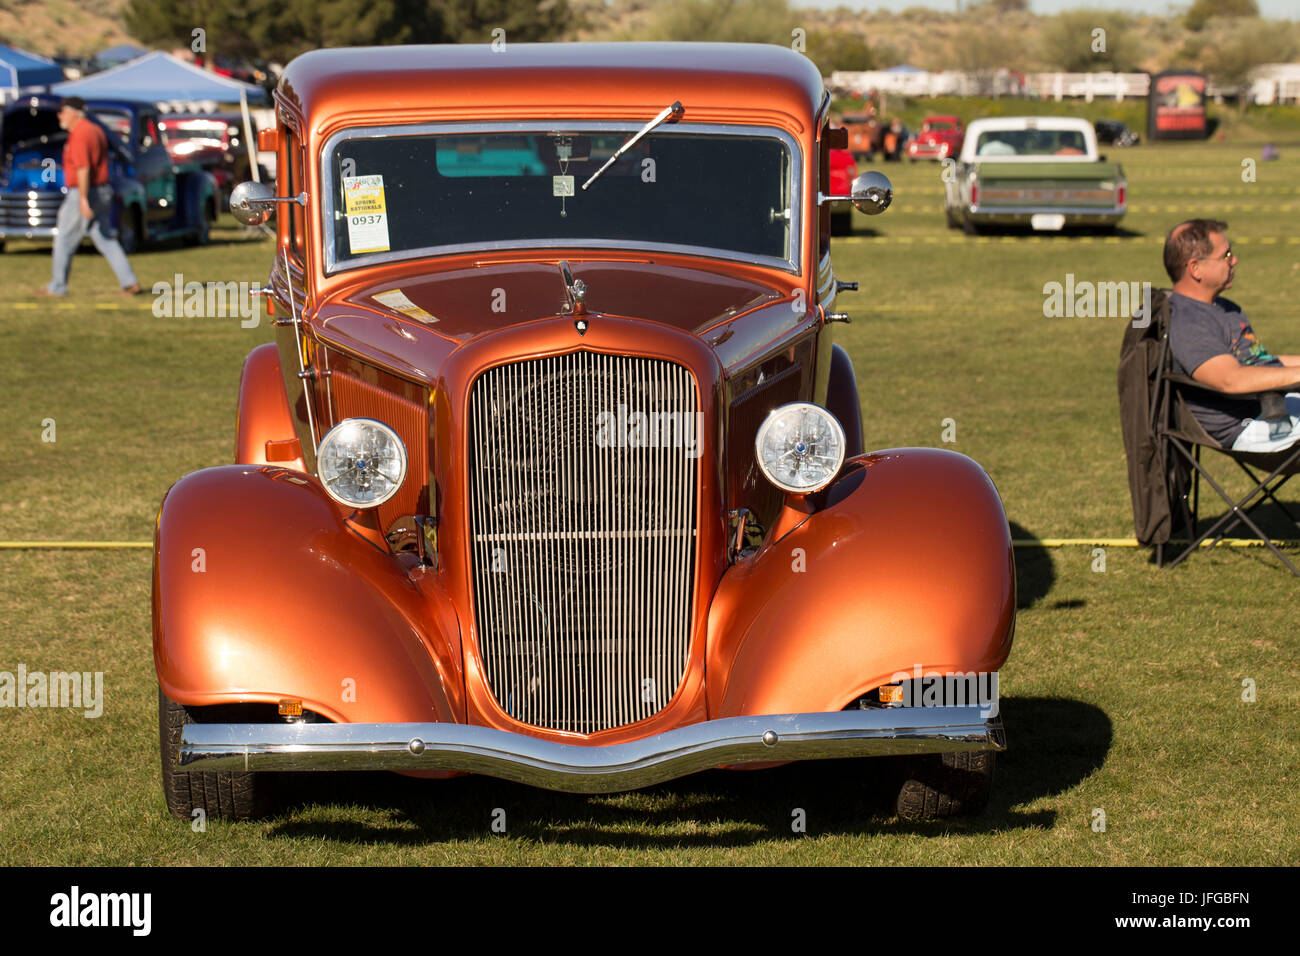 Scottsdale Car Show Stock Photo Alamy - Scottsdale car show today